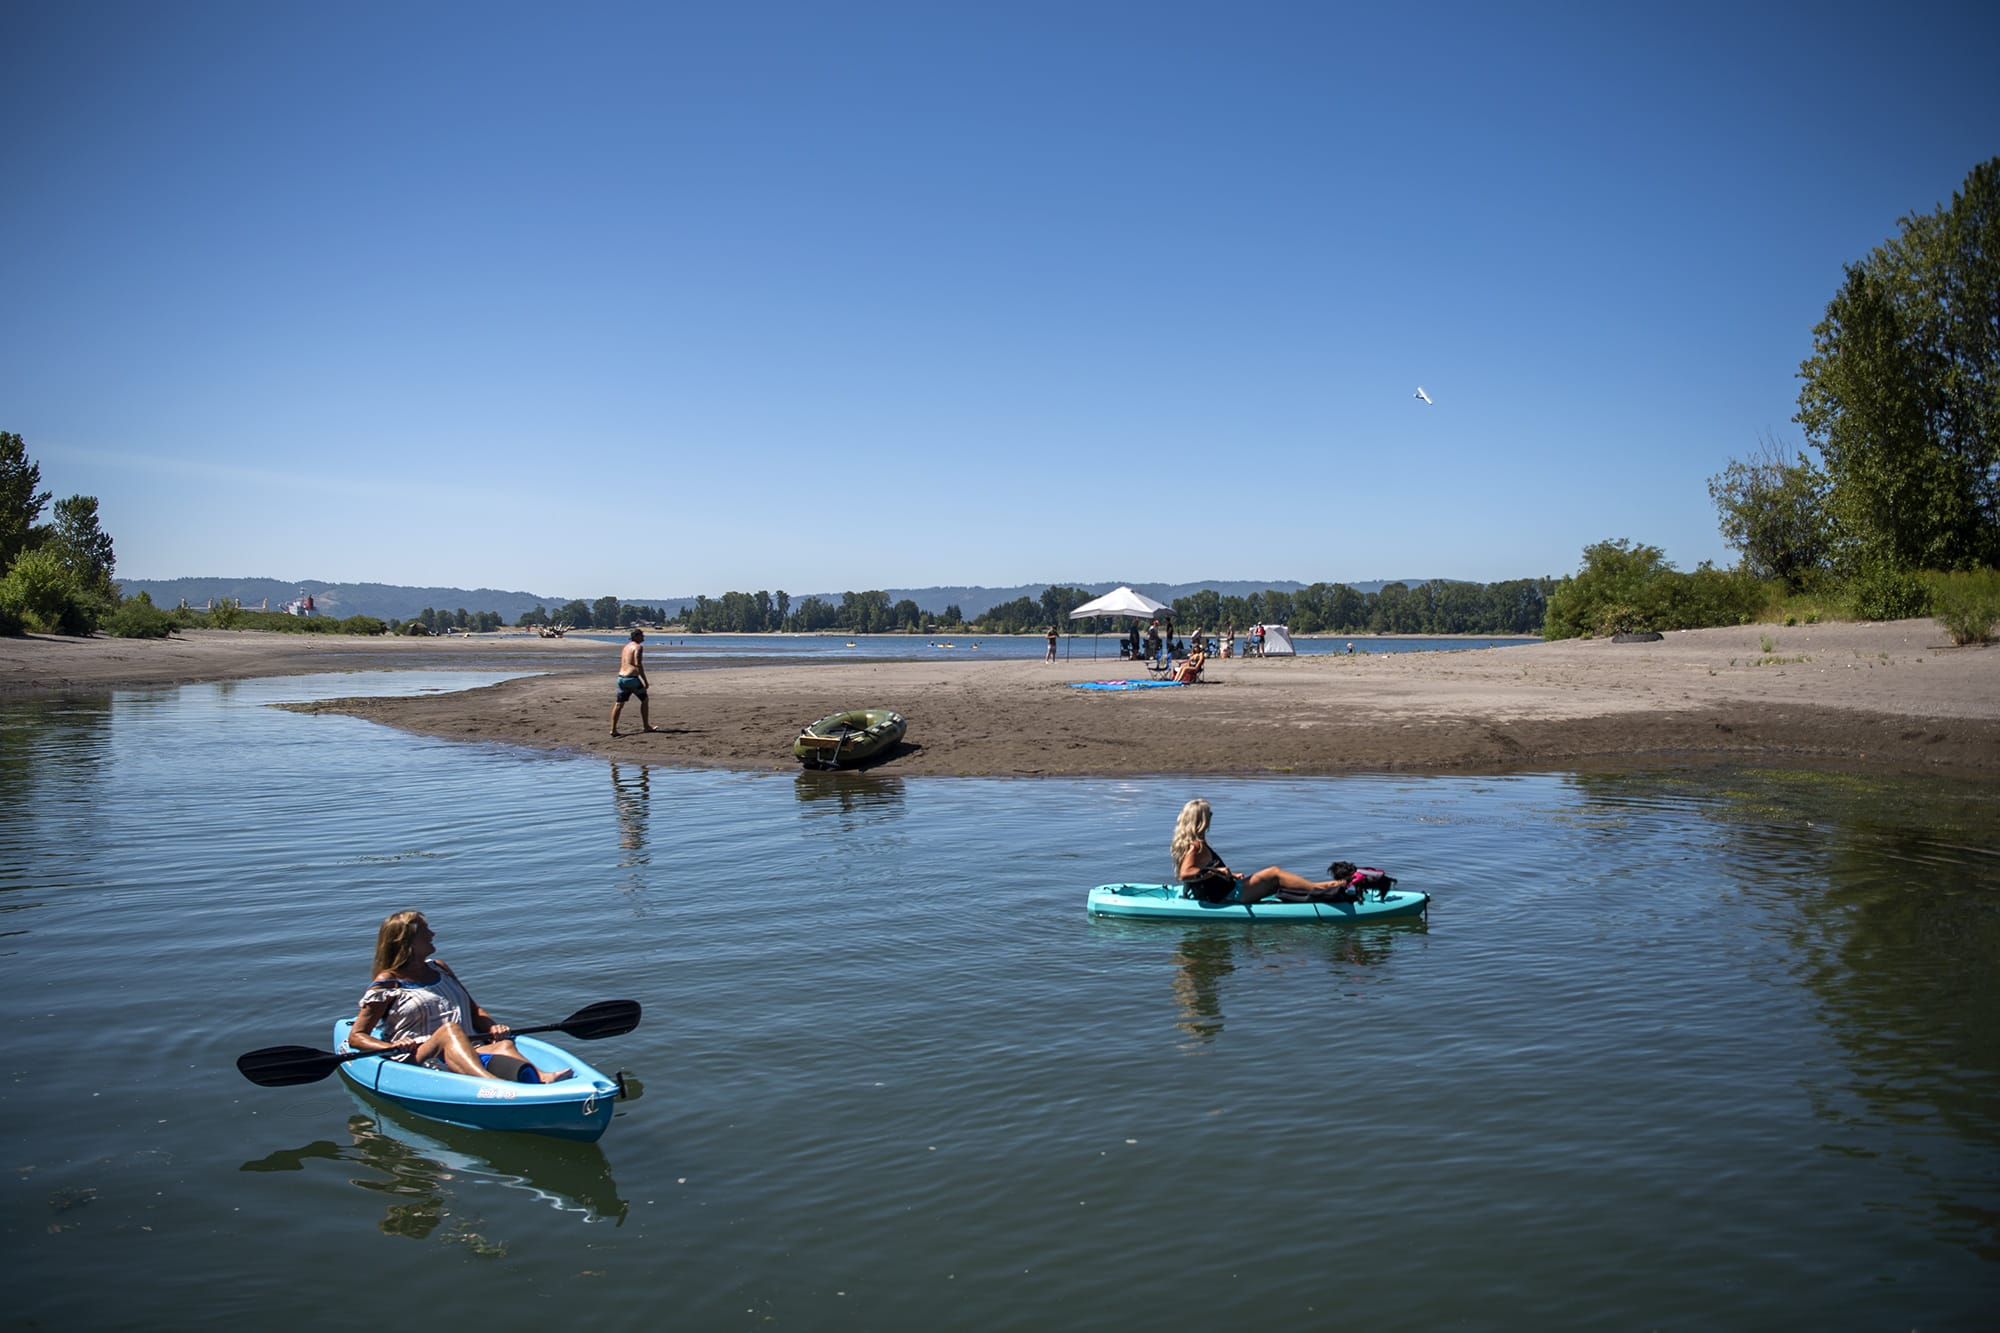 Bev Kadow, left, and her friend Kelly Kopp, right, watch an airplane fly above as they kayak along an offshoot of the Columbia River in Vancouver on August 15, 2020. An excessive heat warning has been issued throughout the weekend until Sunday evening, with temperatures around 100 degrees.  (Alisha Jucevic/The Columbian)